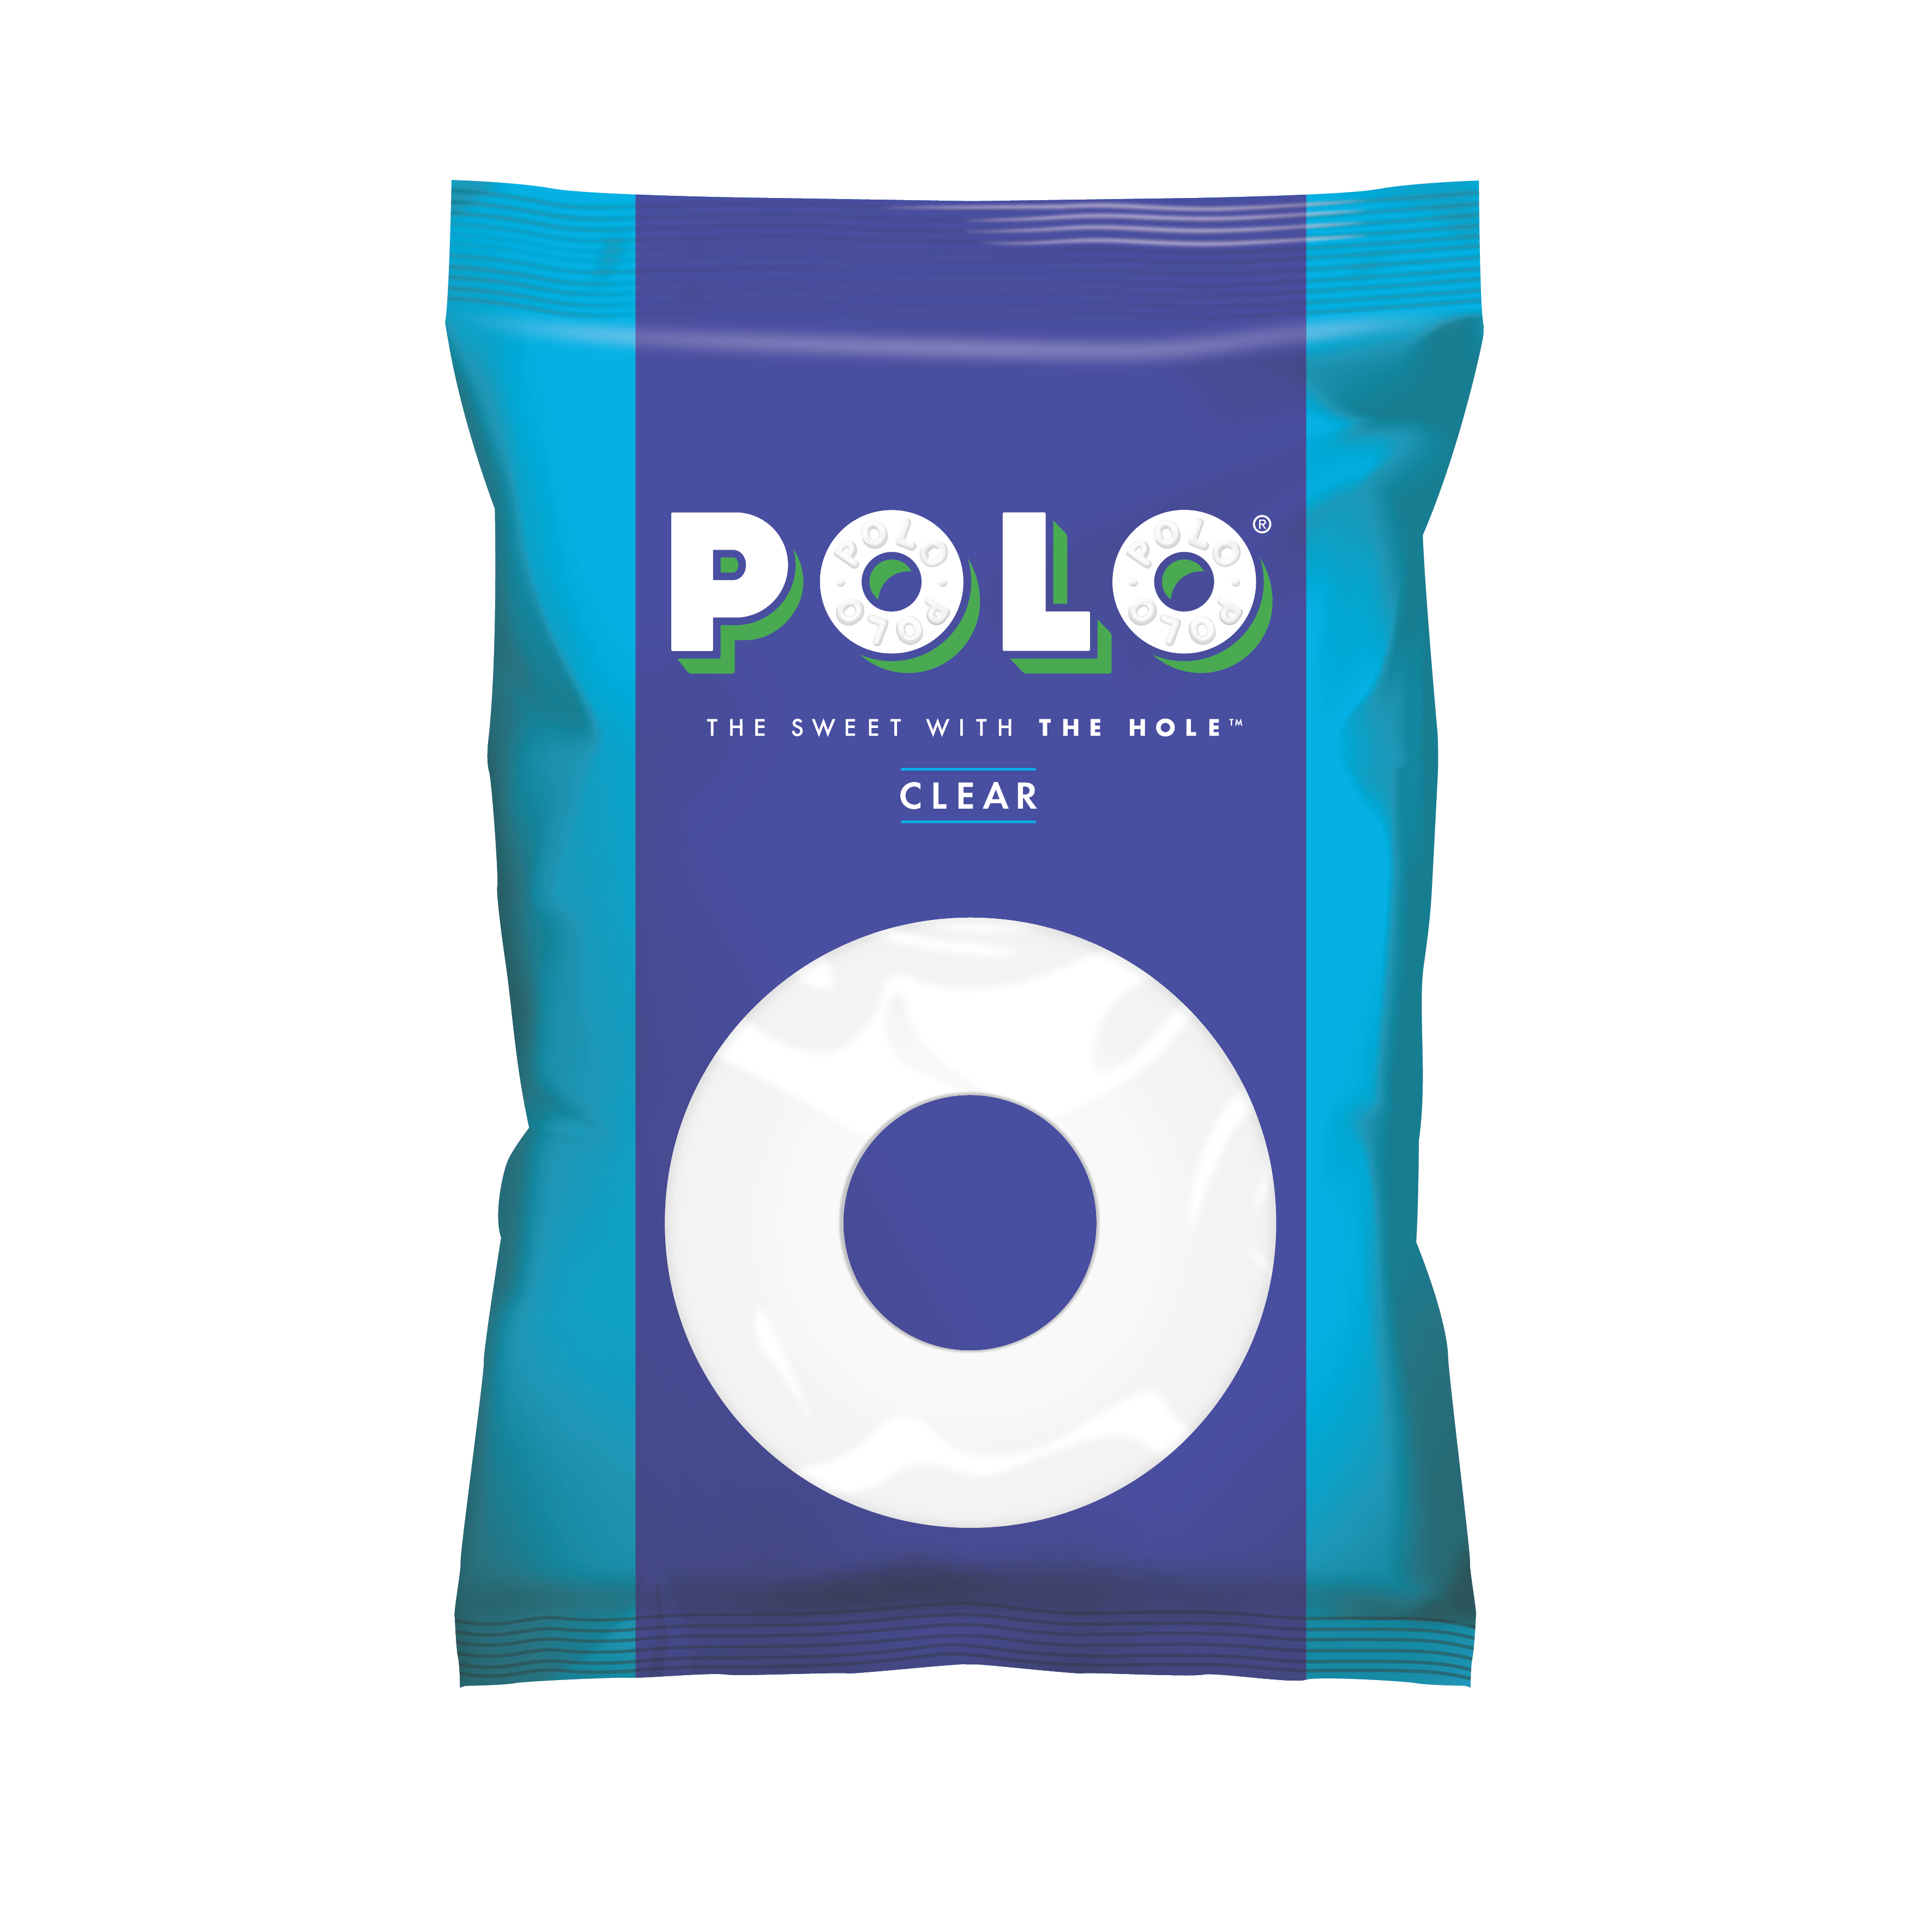 Polo_Clear_Bag_Window-01-01